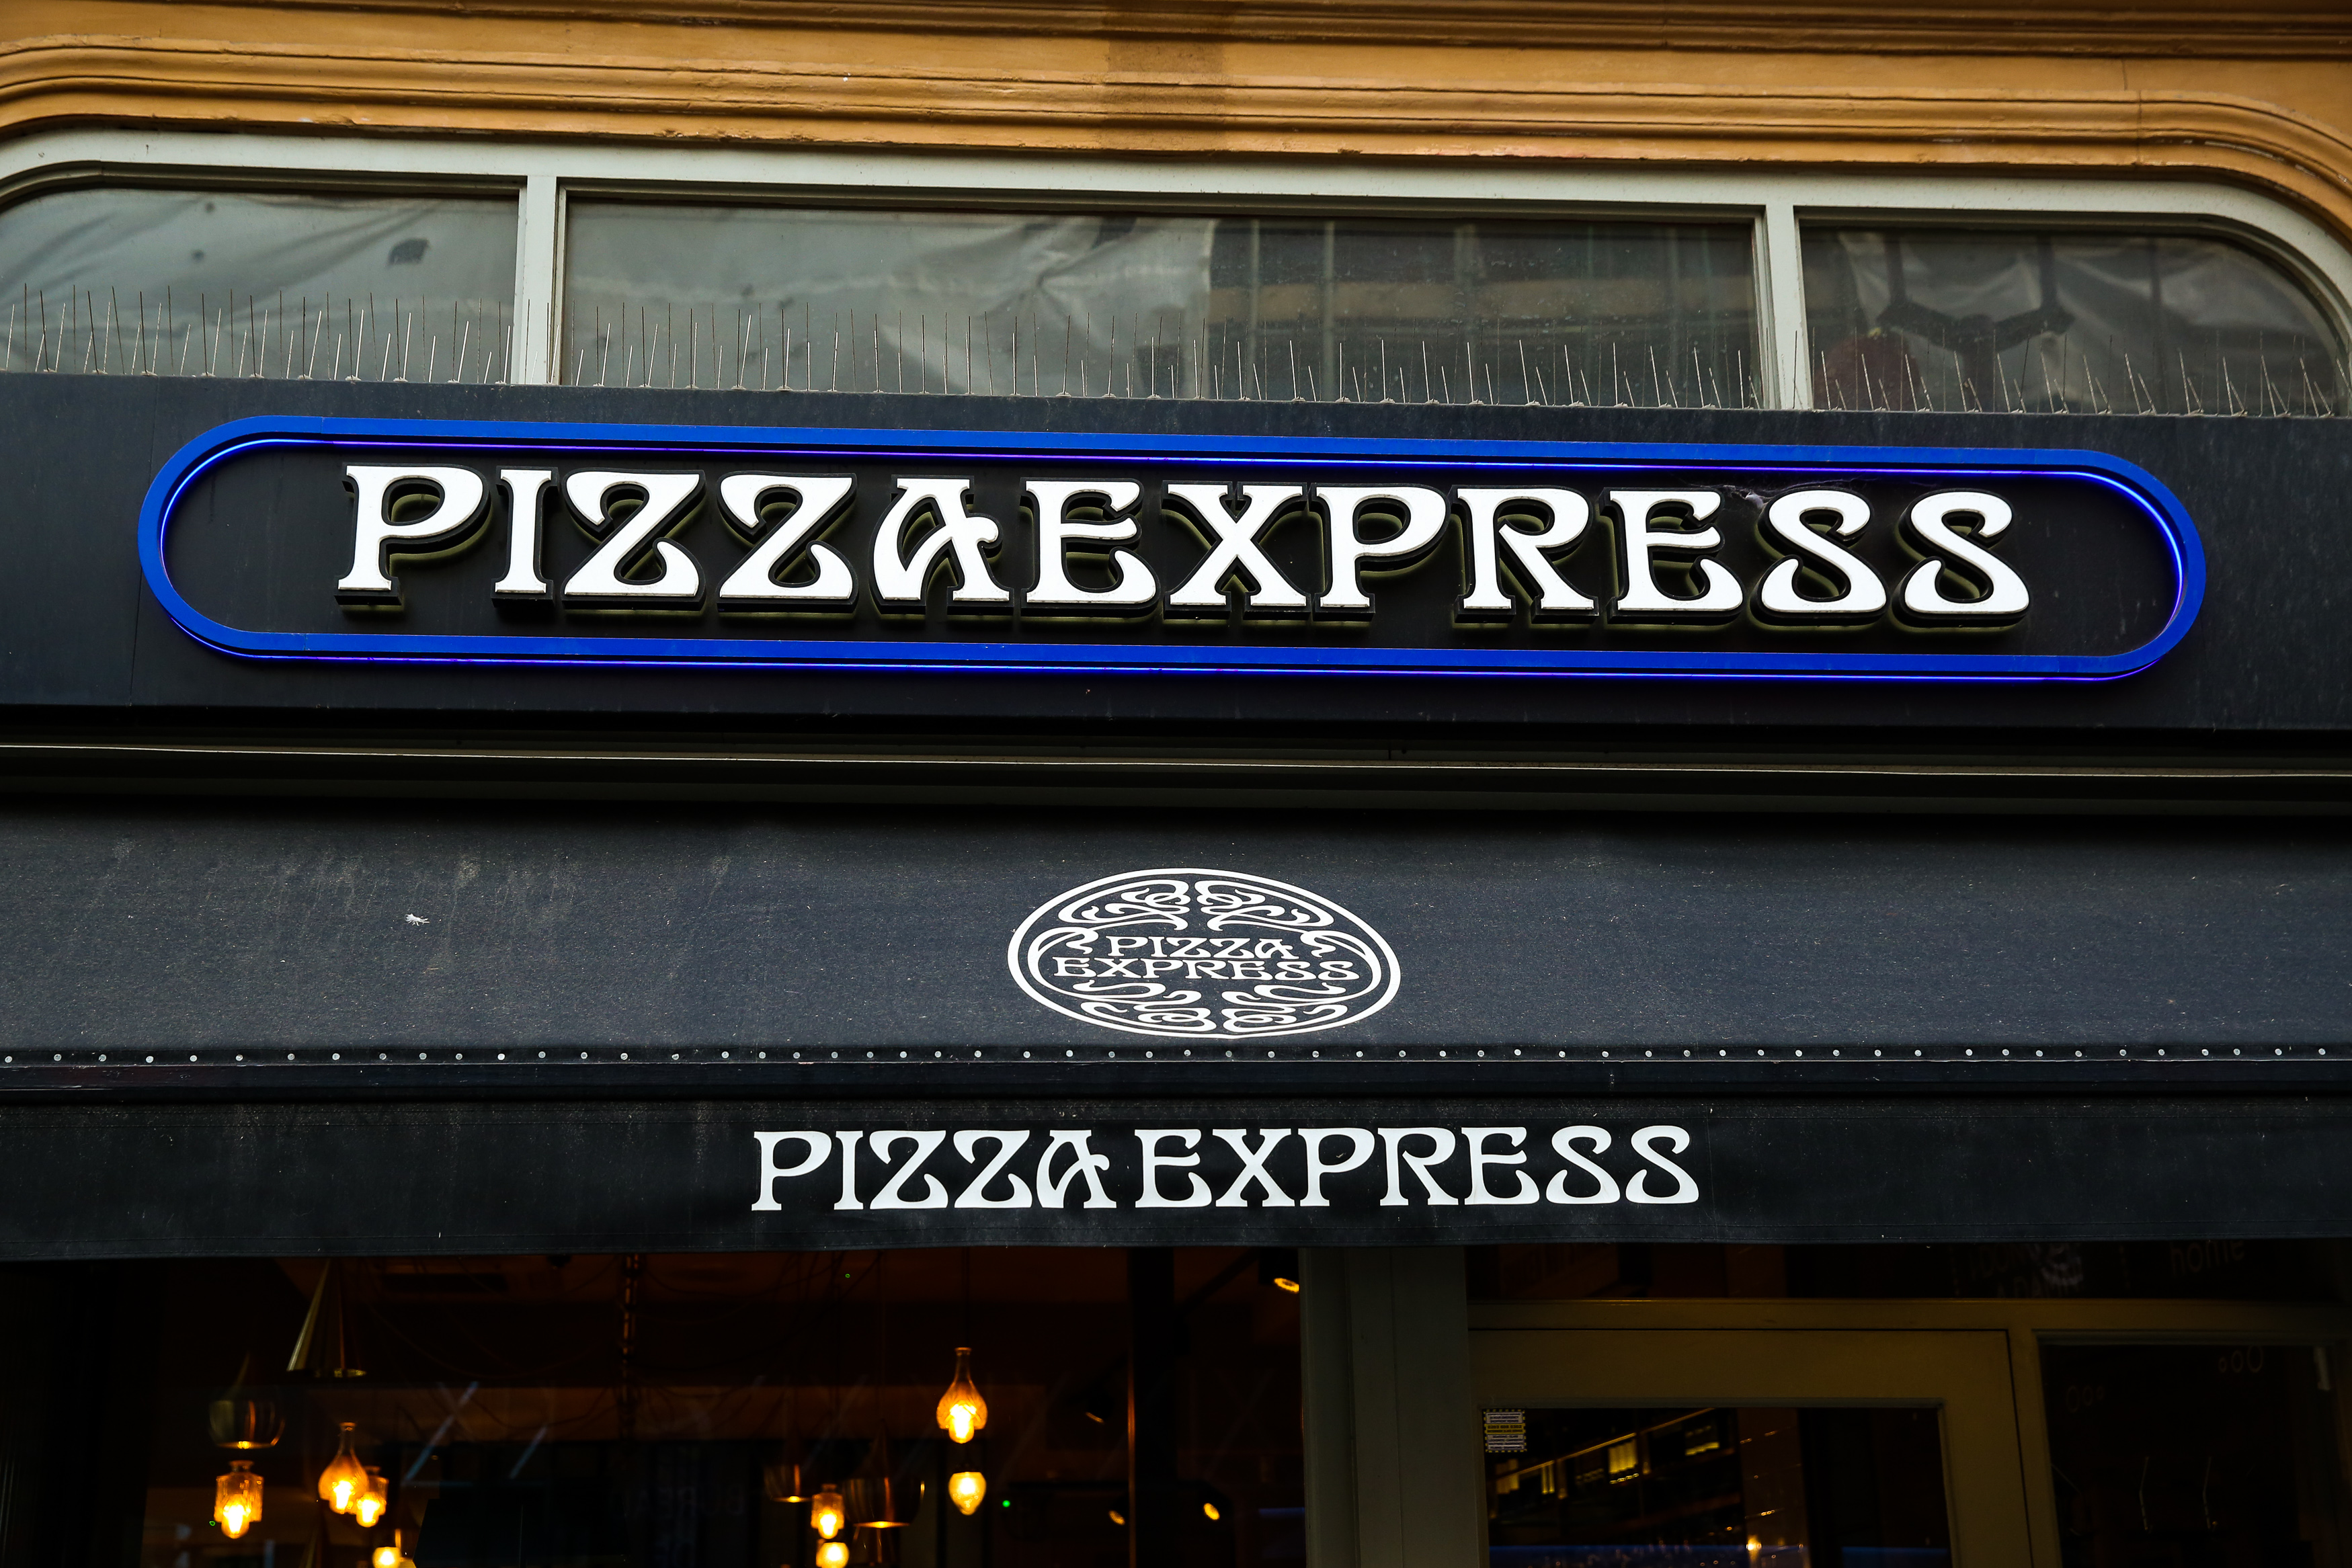 Beloved Italian Chain Pizza Express Says 95 Percent of Its Restaurants Are Doing Fine